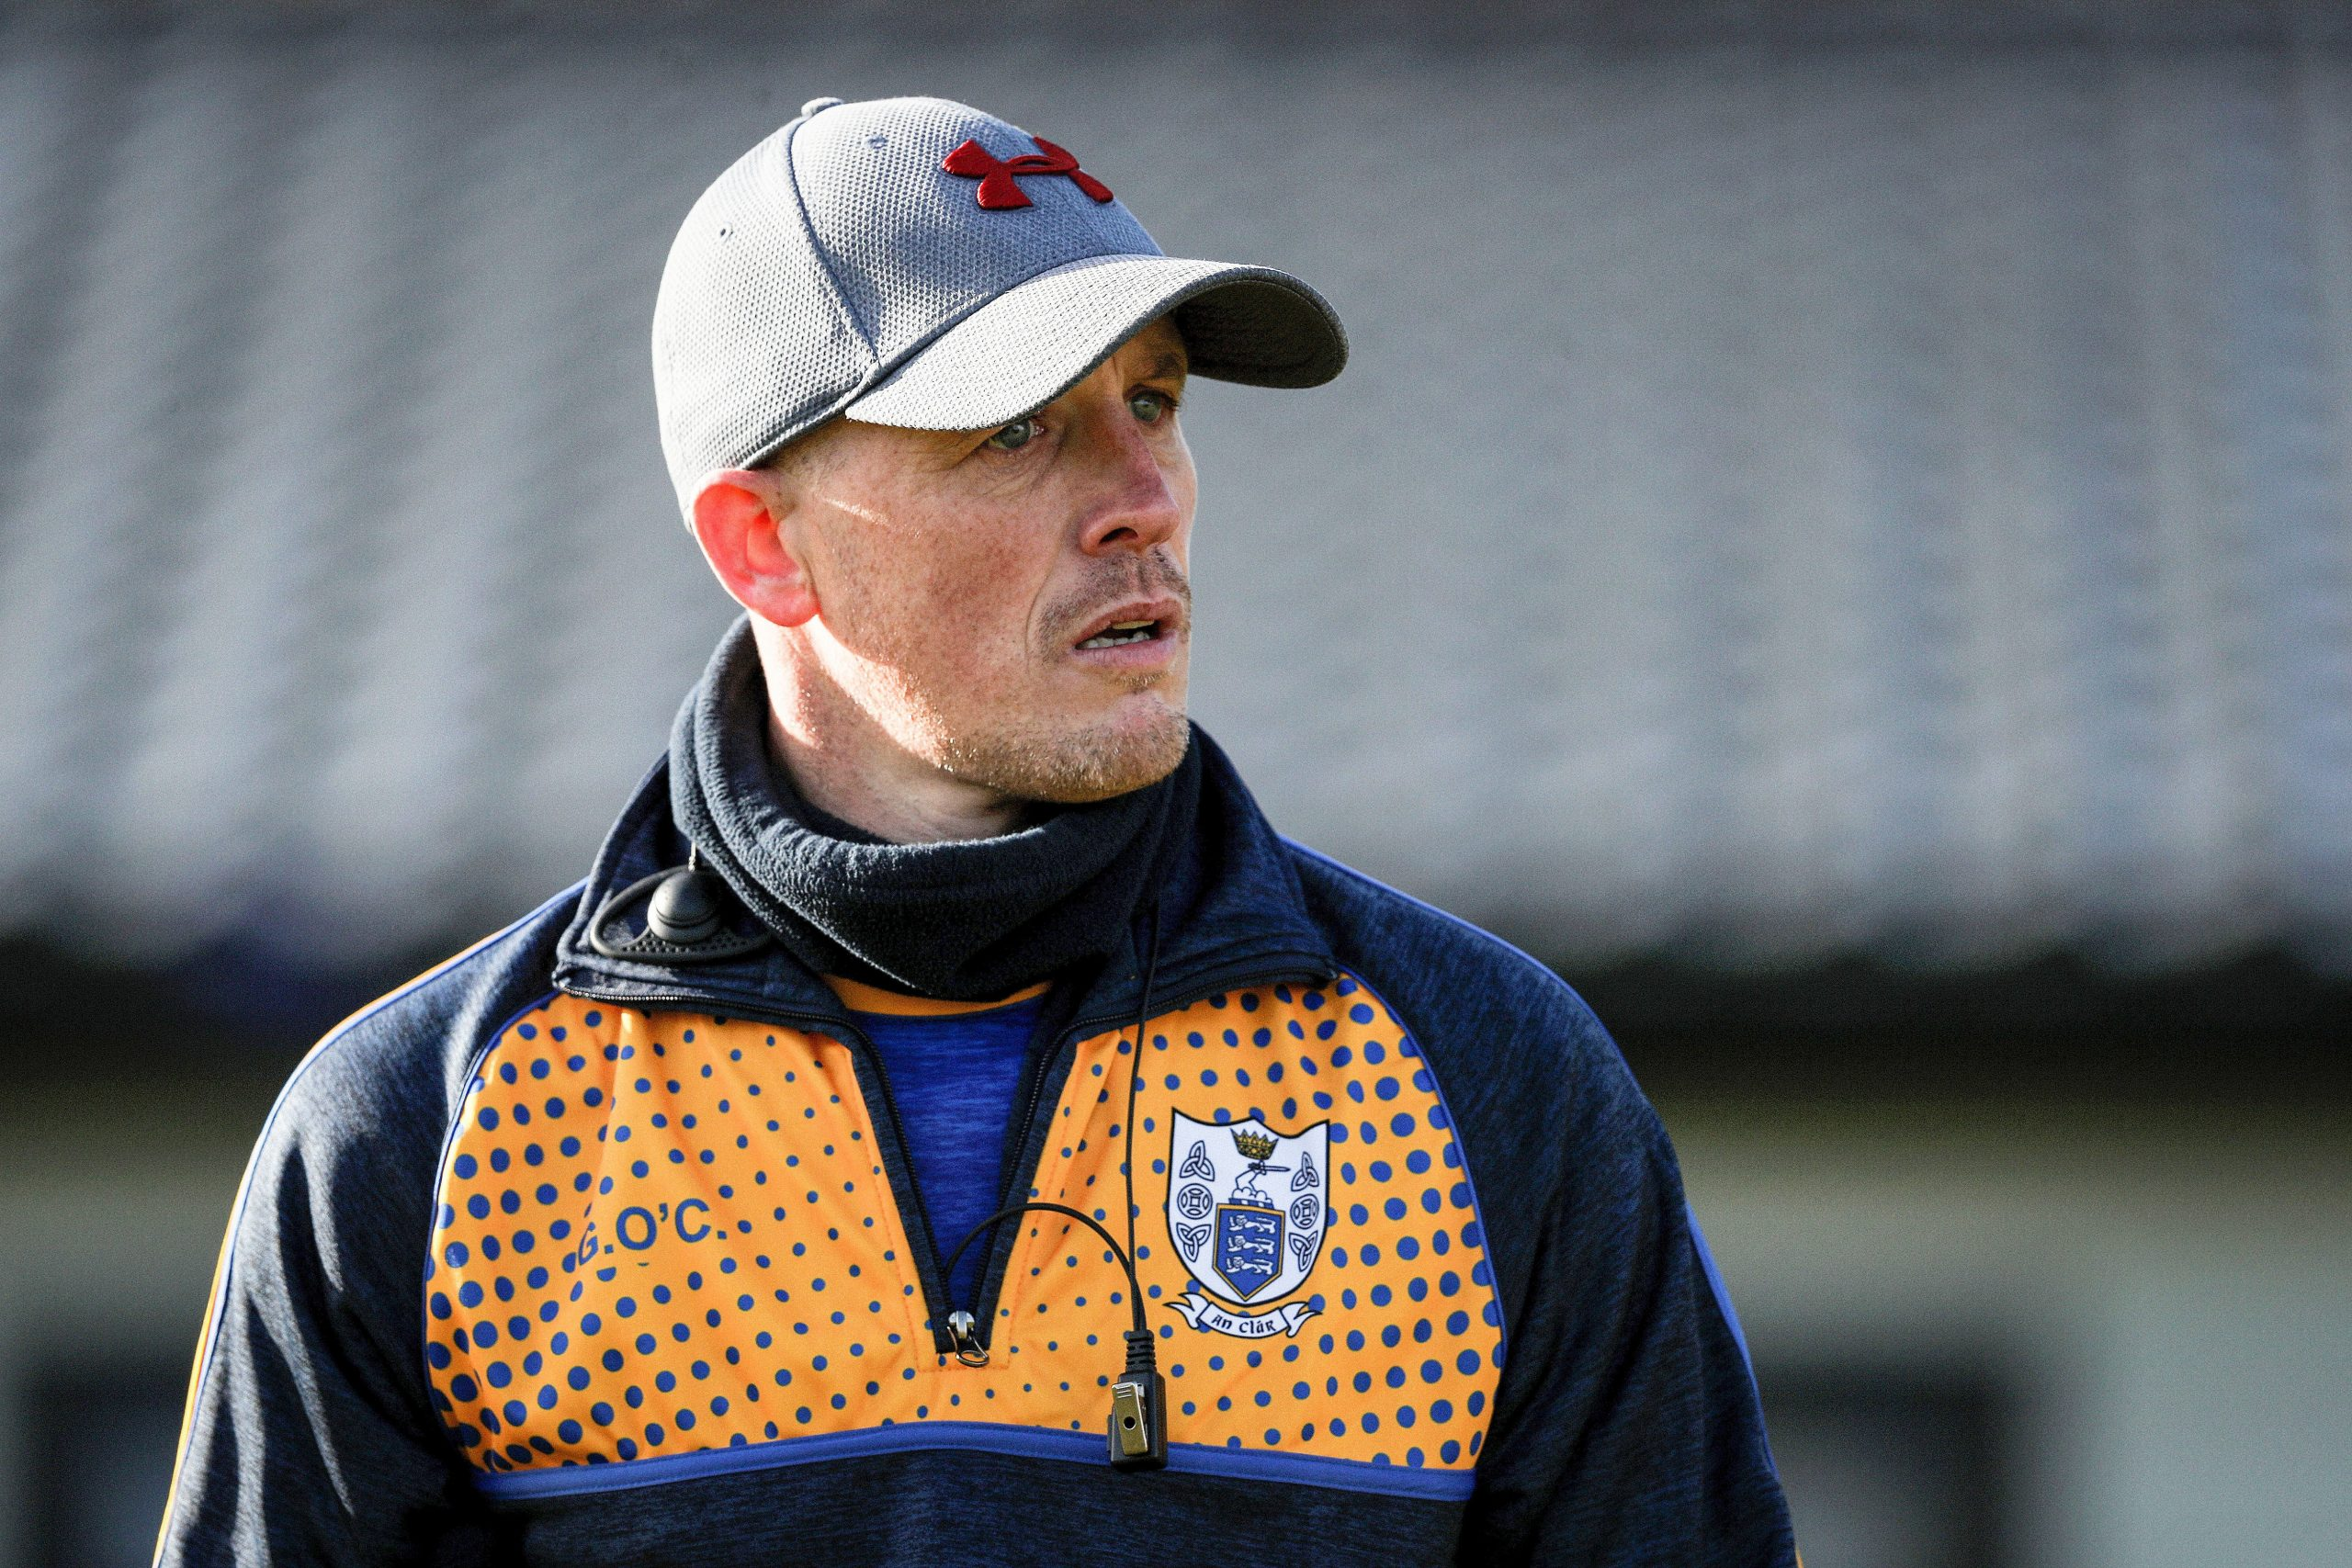 O'Connell praises Clare's experienced leaders